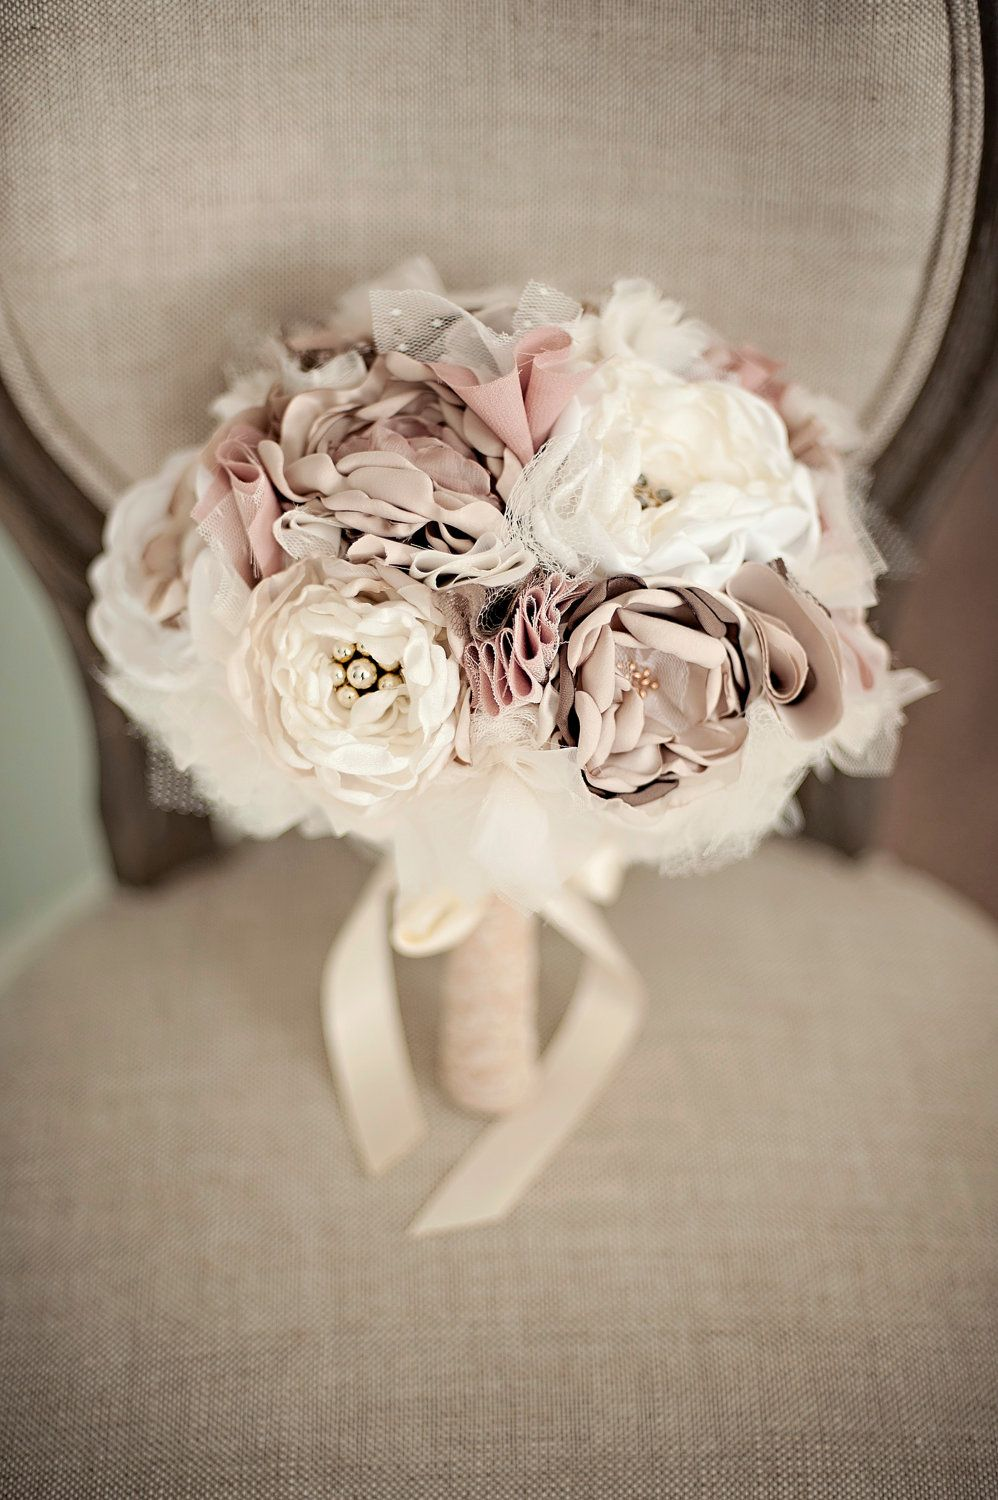 Fabric Flower Custom Wedding Bouquet Champagne Dusty Rose Ivory With Pearls Lace